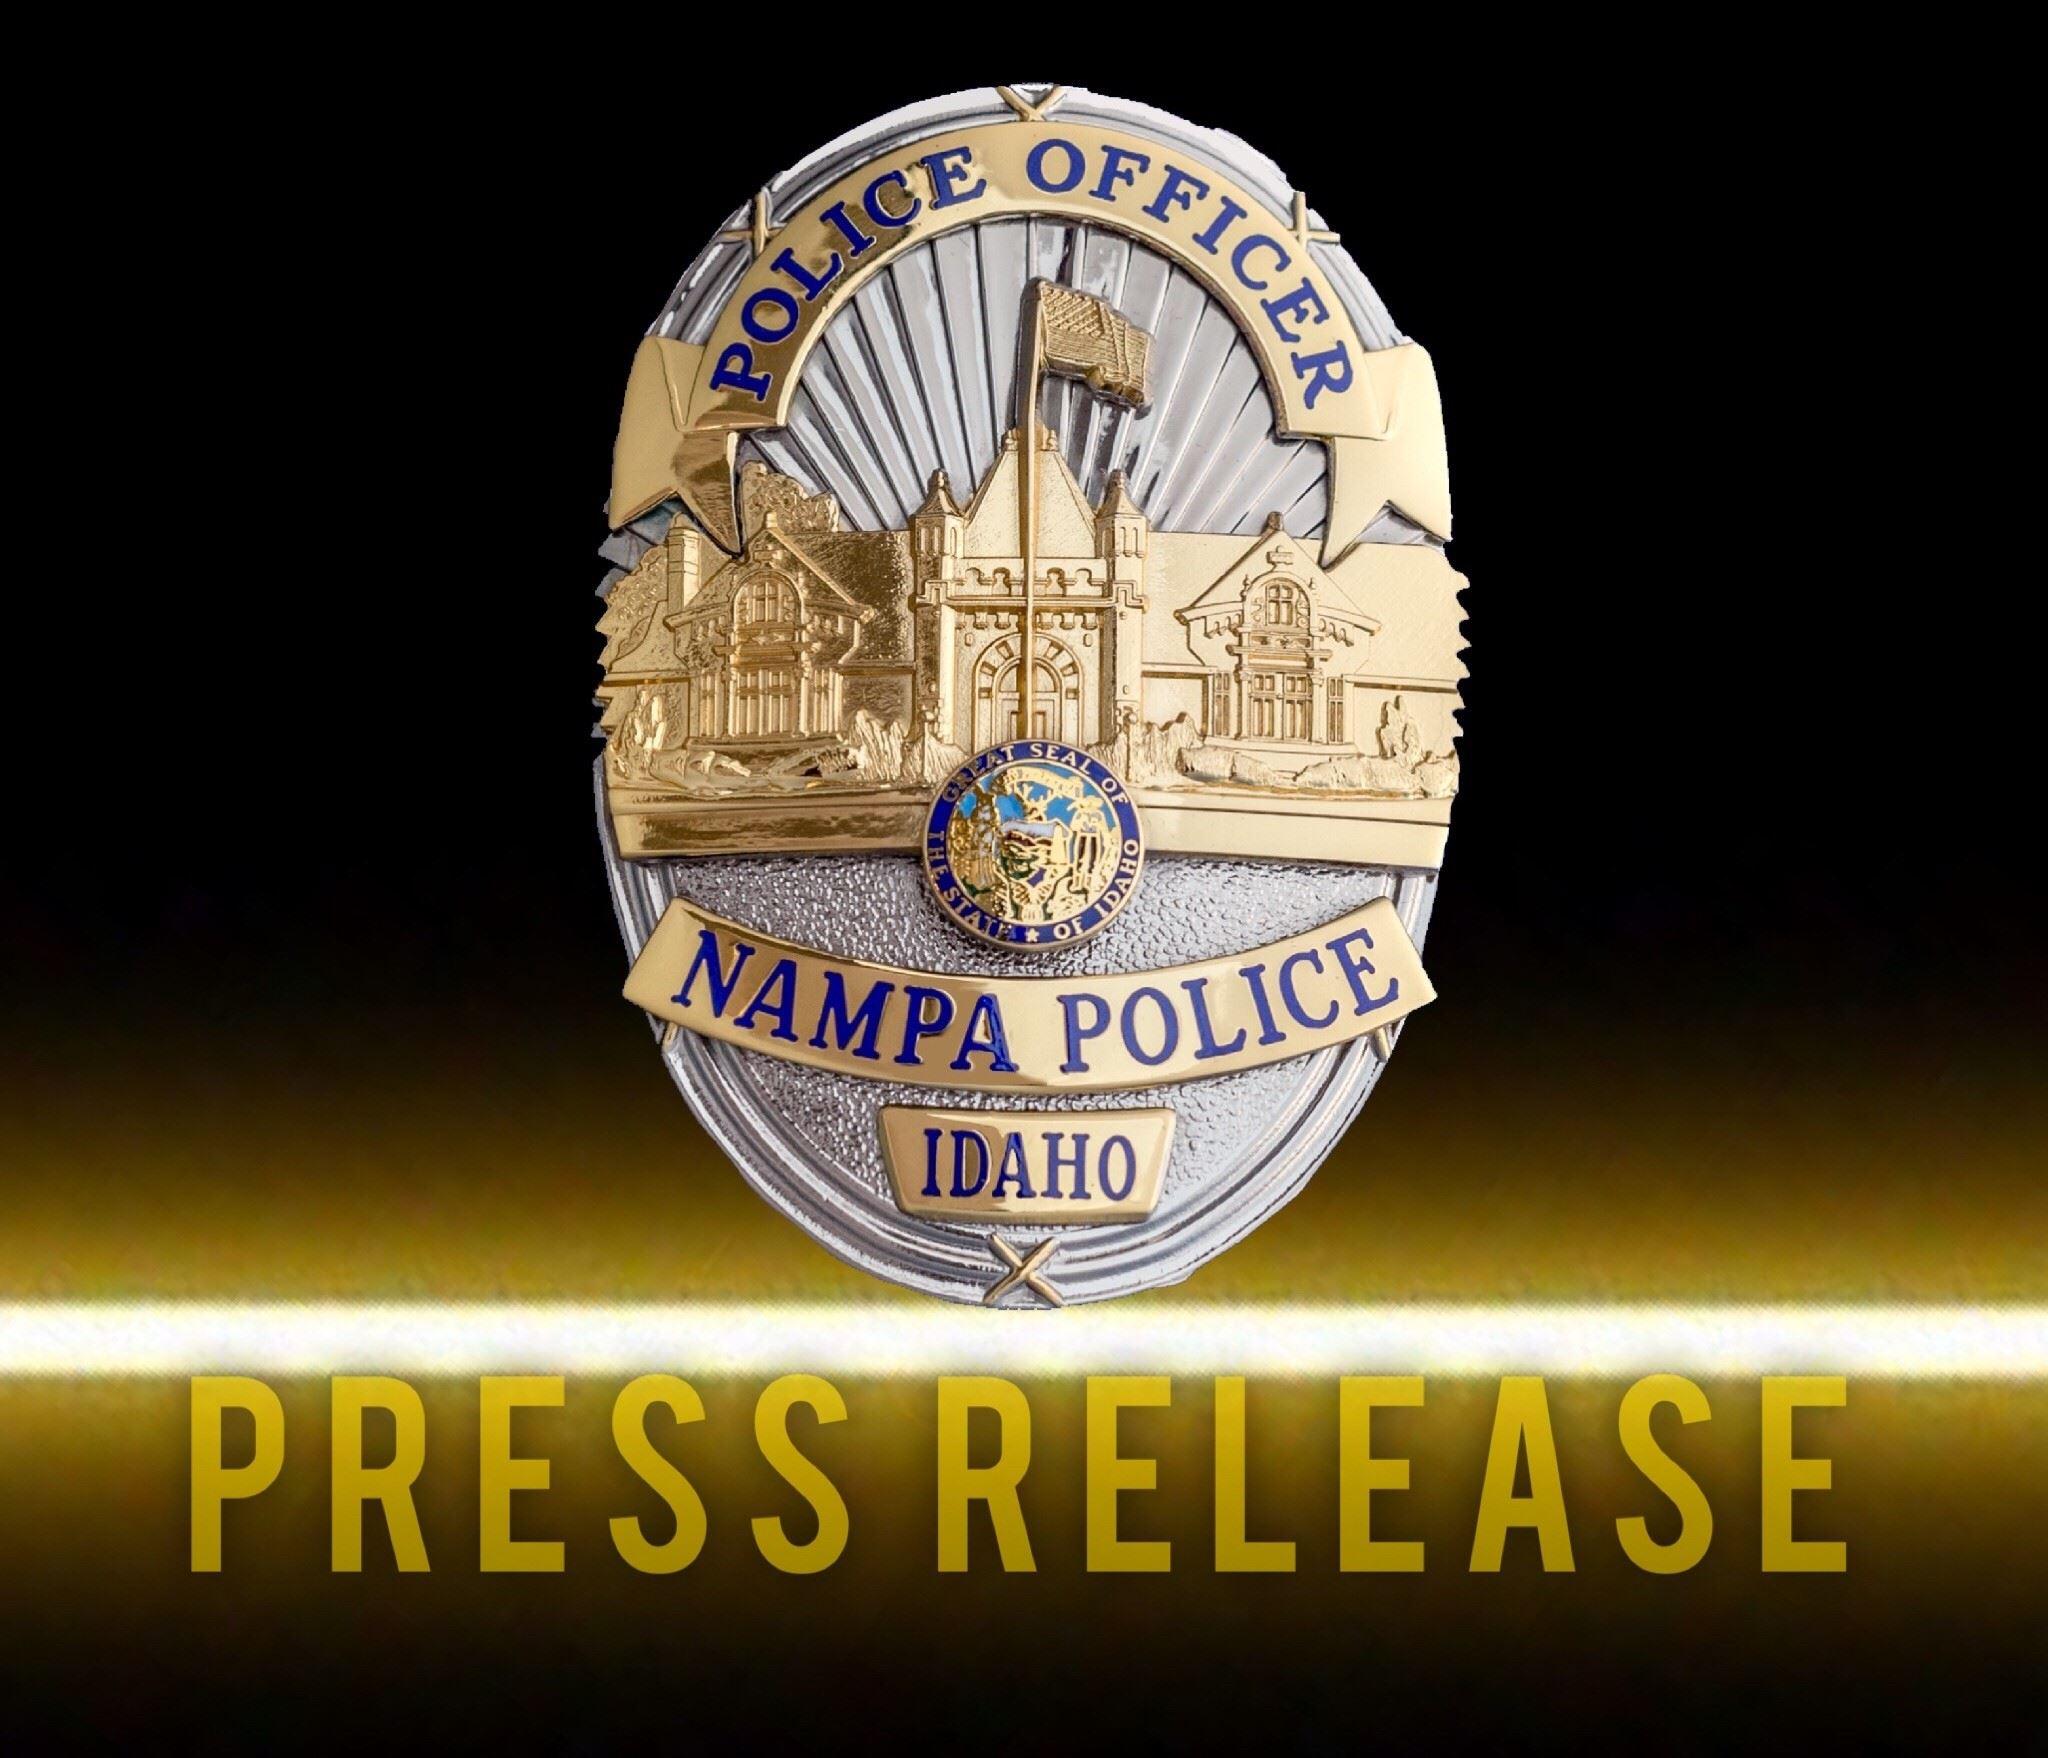 Nampa Police press release logo with Nampa Police badge in the center